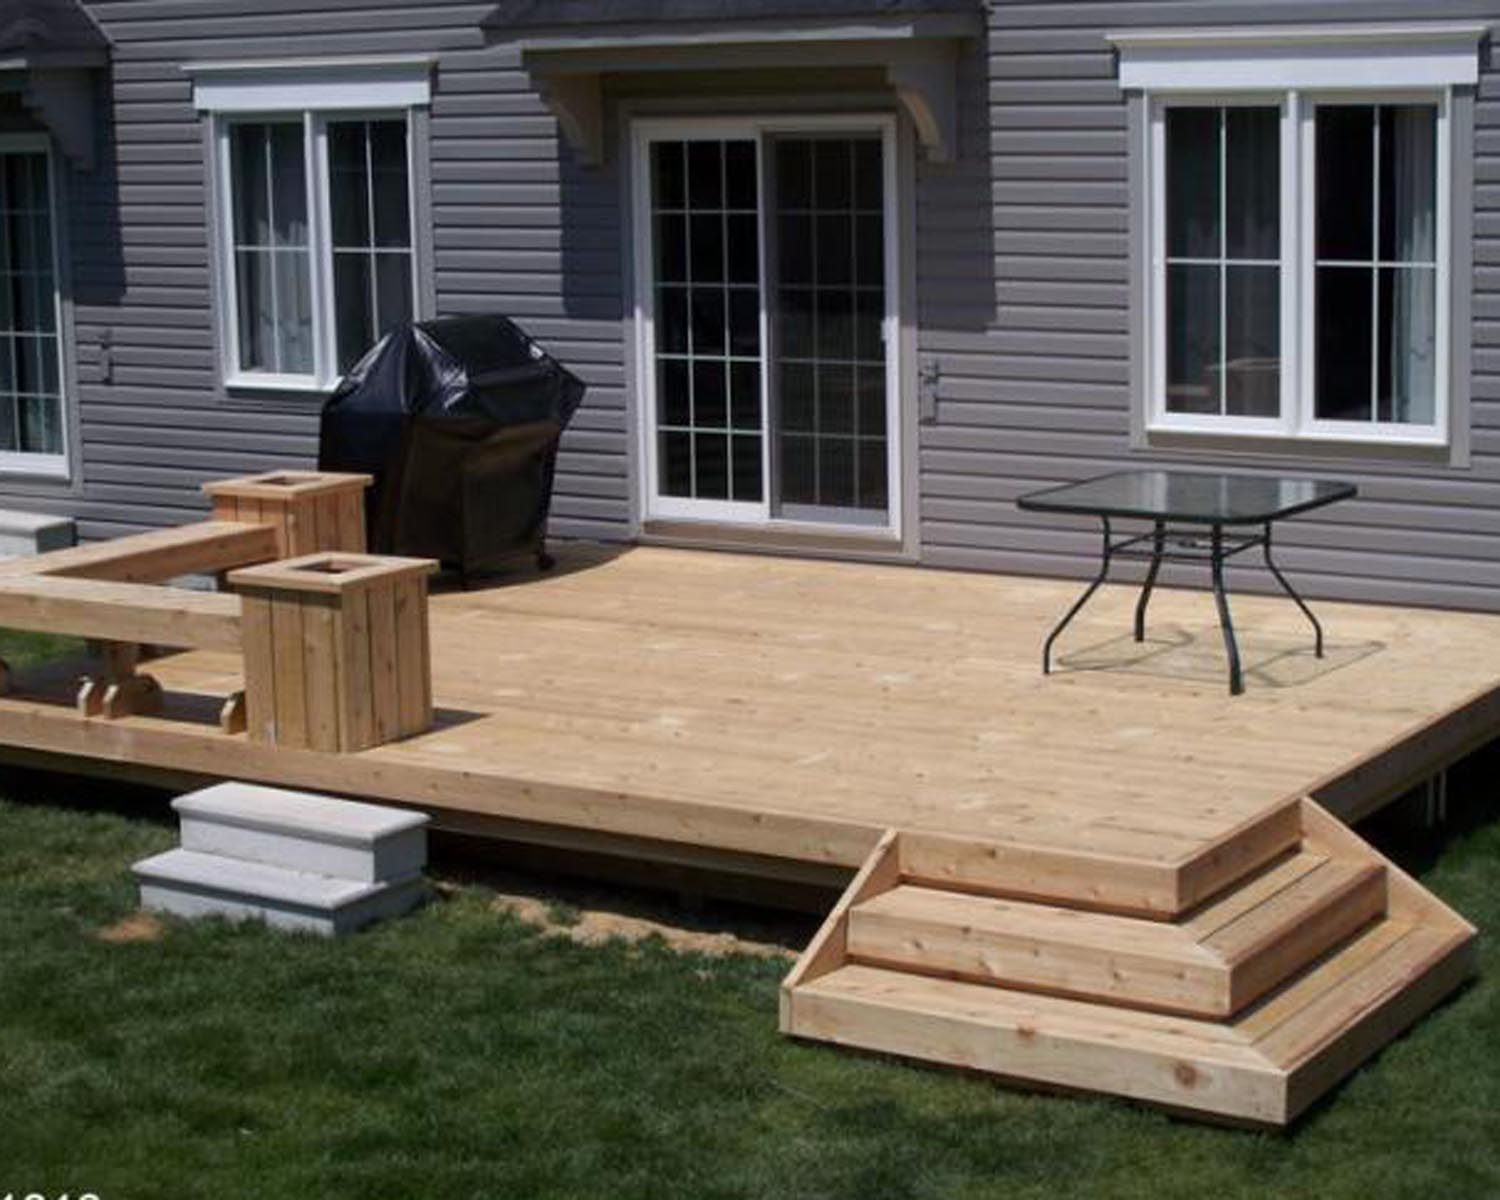 Ideas For Deck Designs google image result for httpwwwideas for deck Deck Ideas Be More When Deck Building Simple But Functional Designs Can